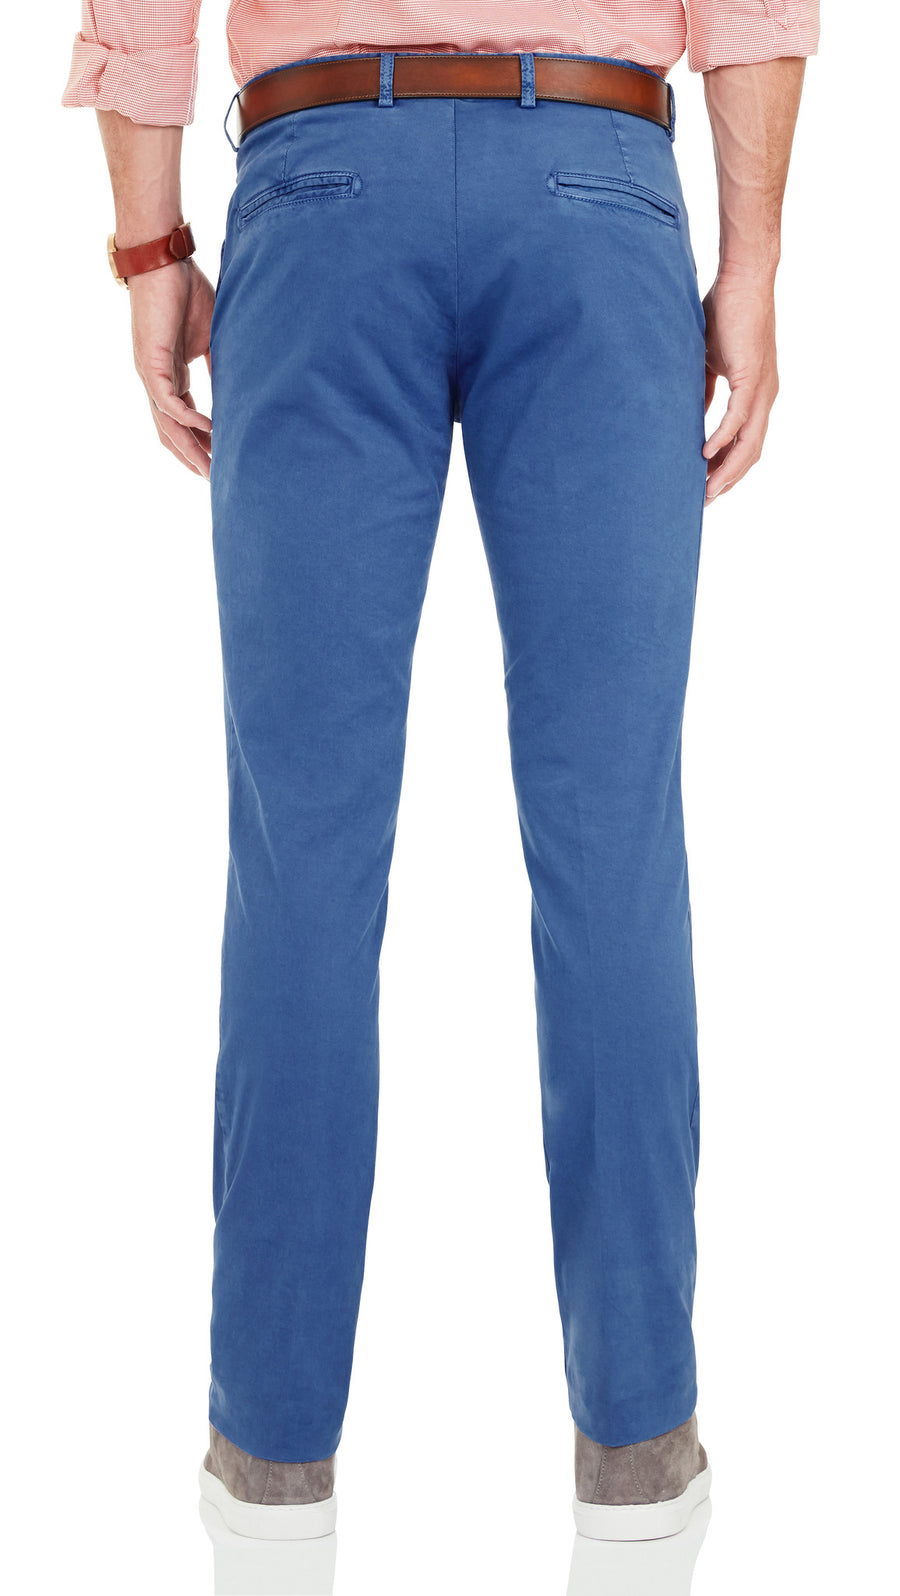 Bennett Cotton Chinos in Indigo - Ron Bennett Menswear  - 1